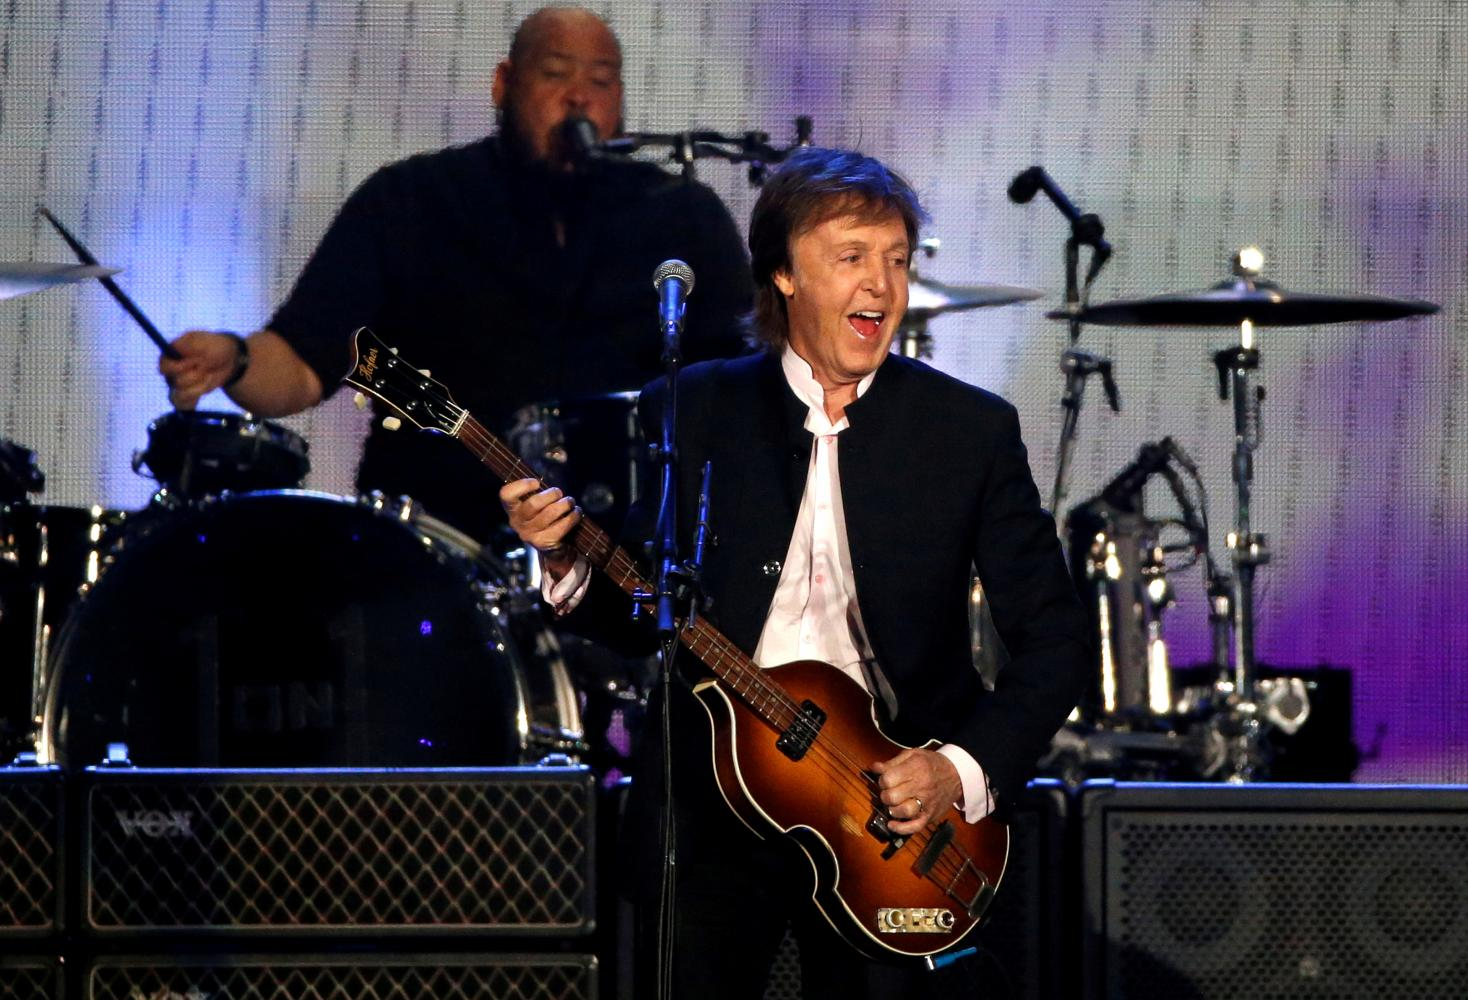 Paul McCartney to release new solo album in December